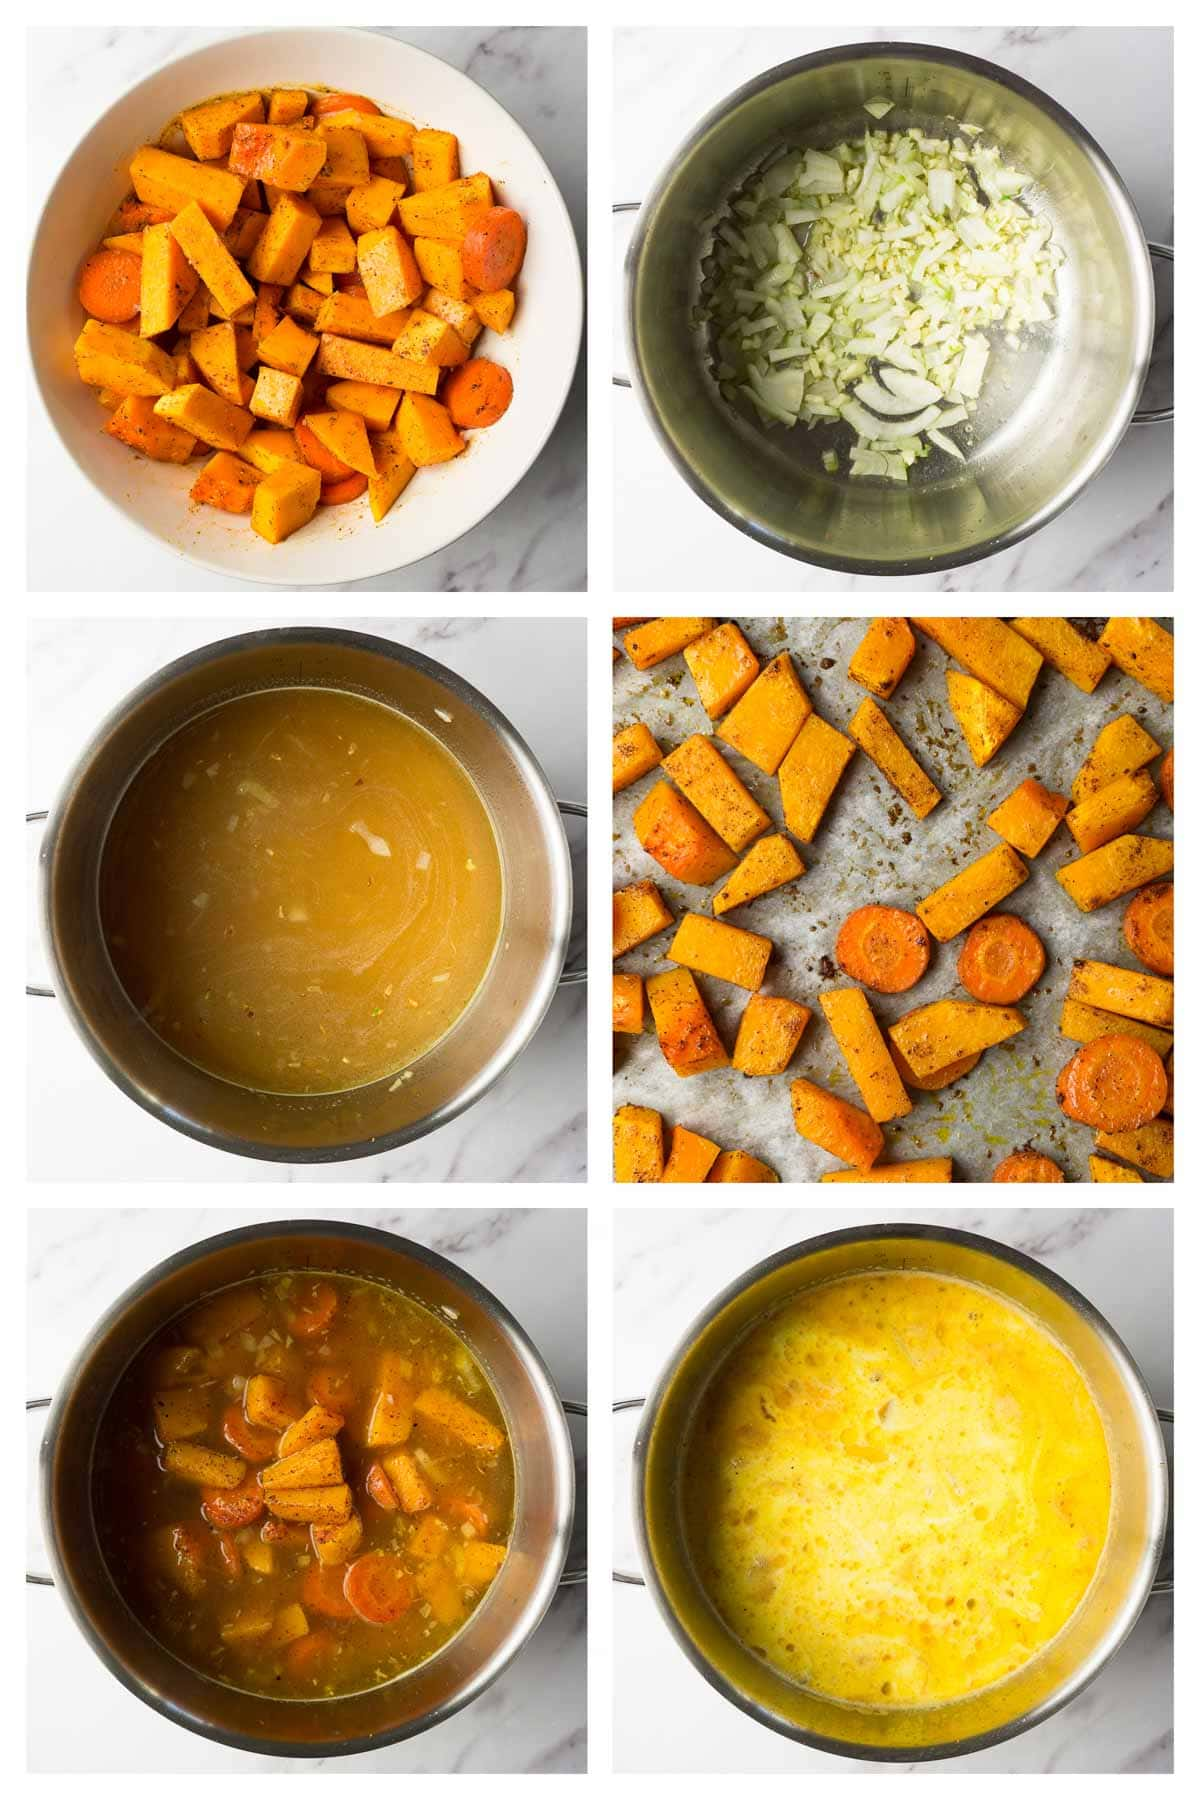 Step by step collage image showing how to make keto butternut squash soup.